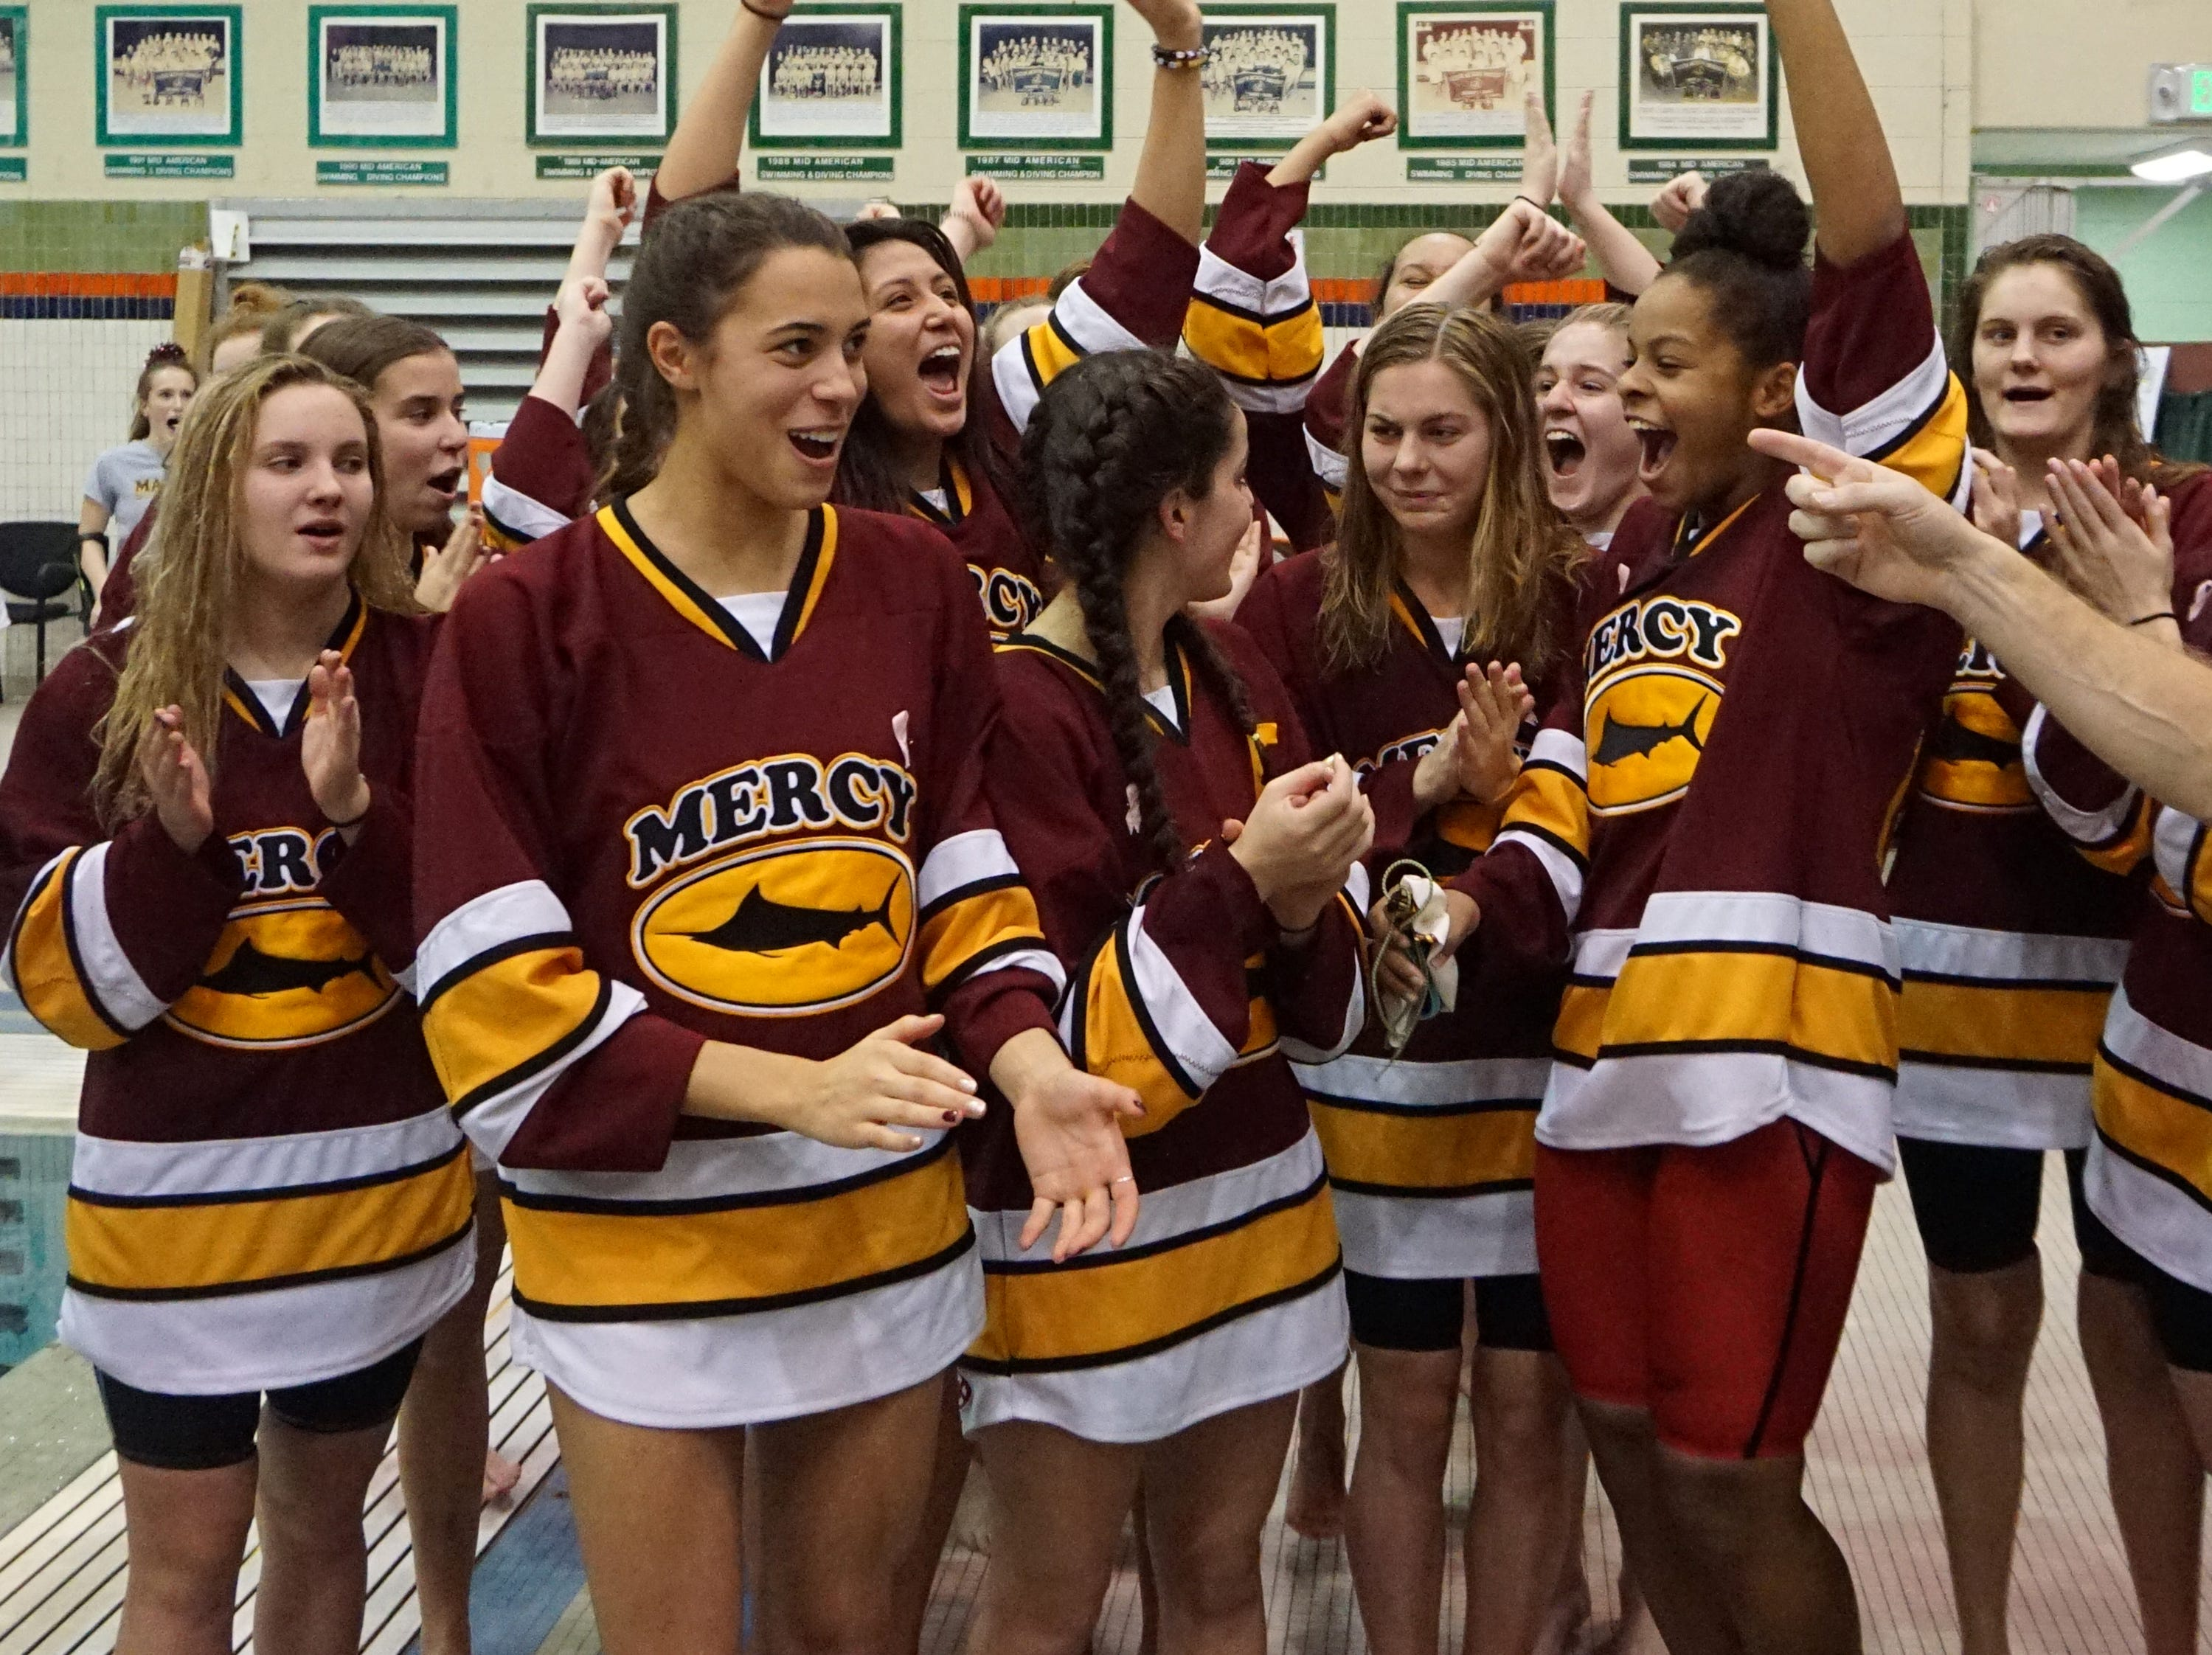 Mercy is announced the top team at the Division 1 girls swimming and diving championships held at Eastern Michigan University Nov. 17, 2018.